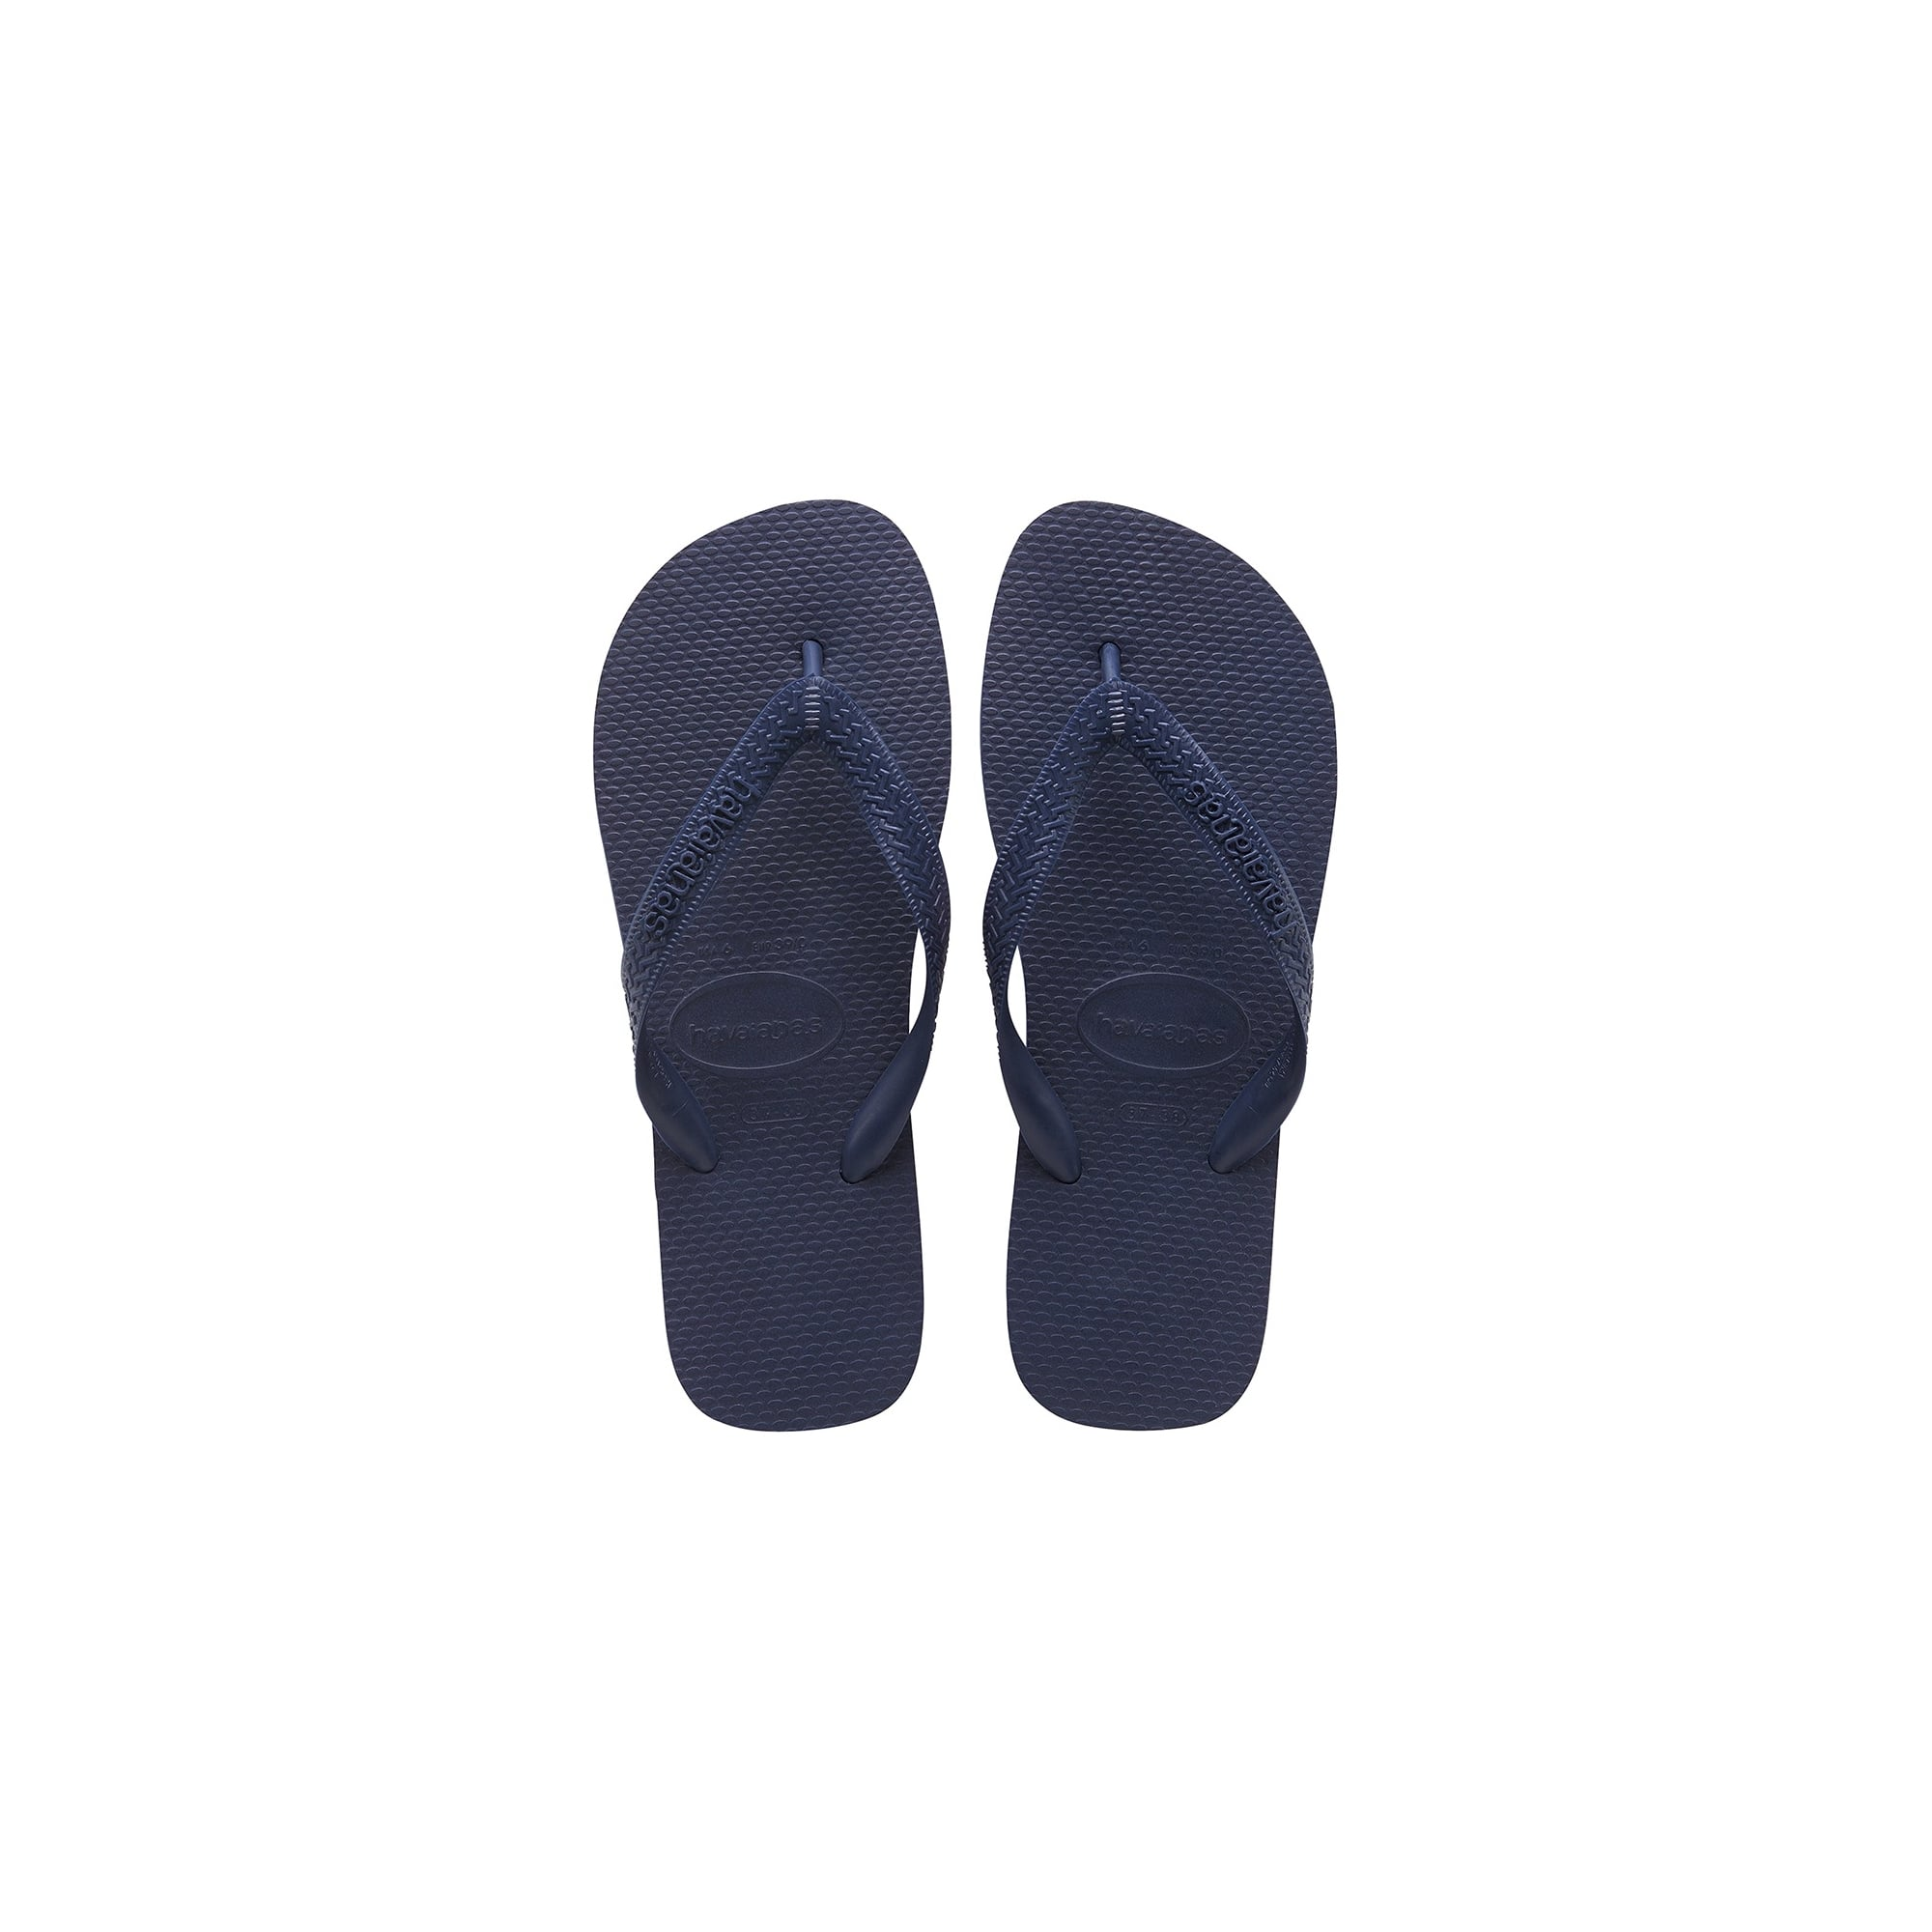 ef1787eecf2 Havaianas Top Flip Flop in Navy Blue